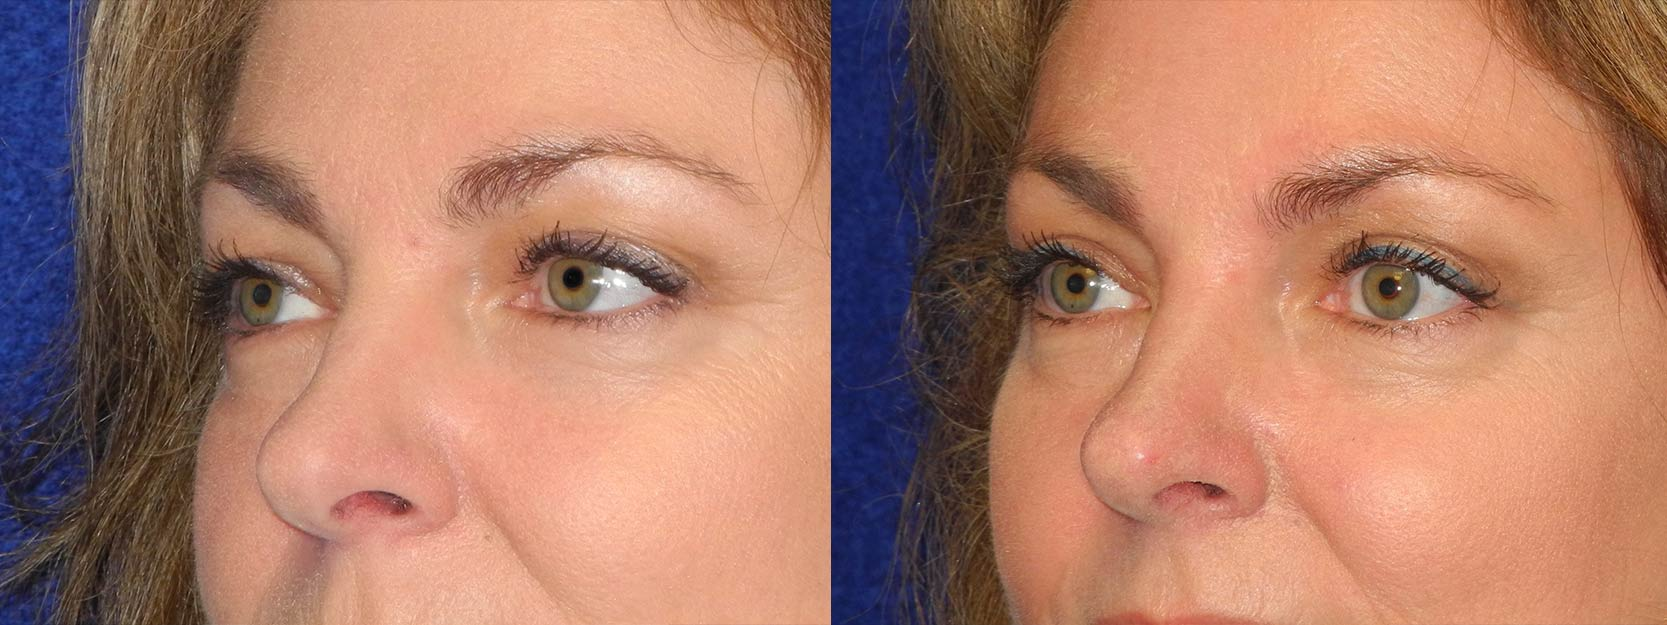 Left 3/4 View - Upper Eyelid Surgery